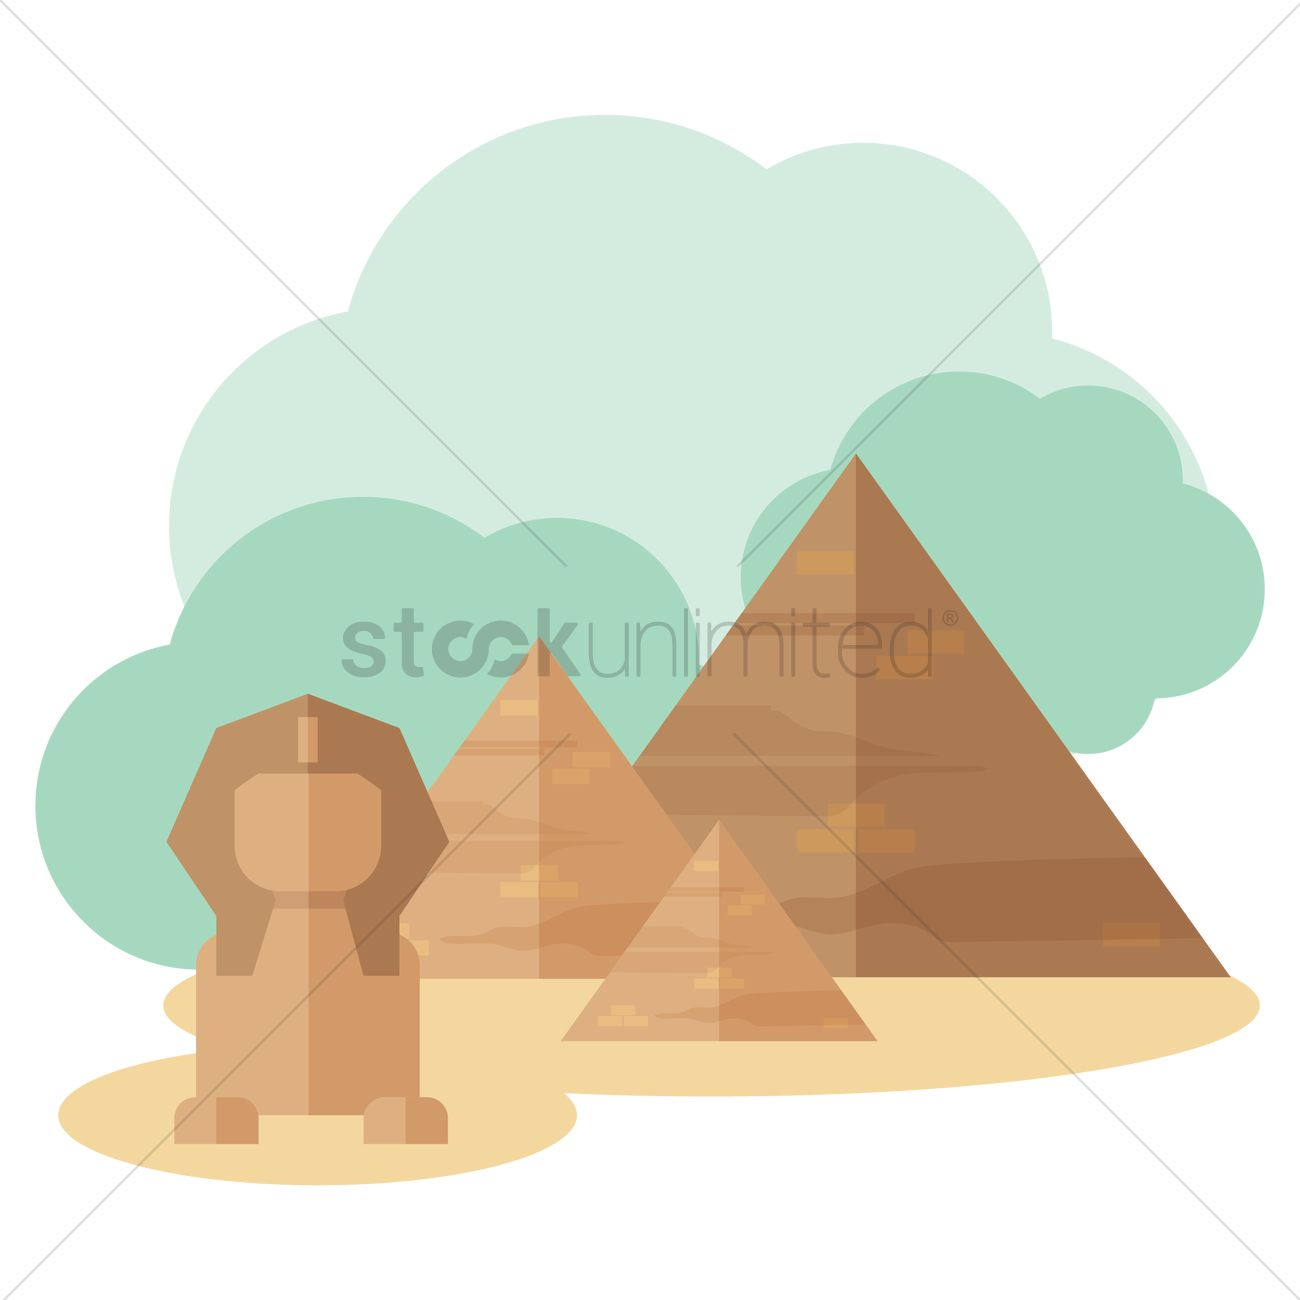 Great pyramid of giza and great sphinx Vector Image.